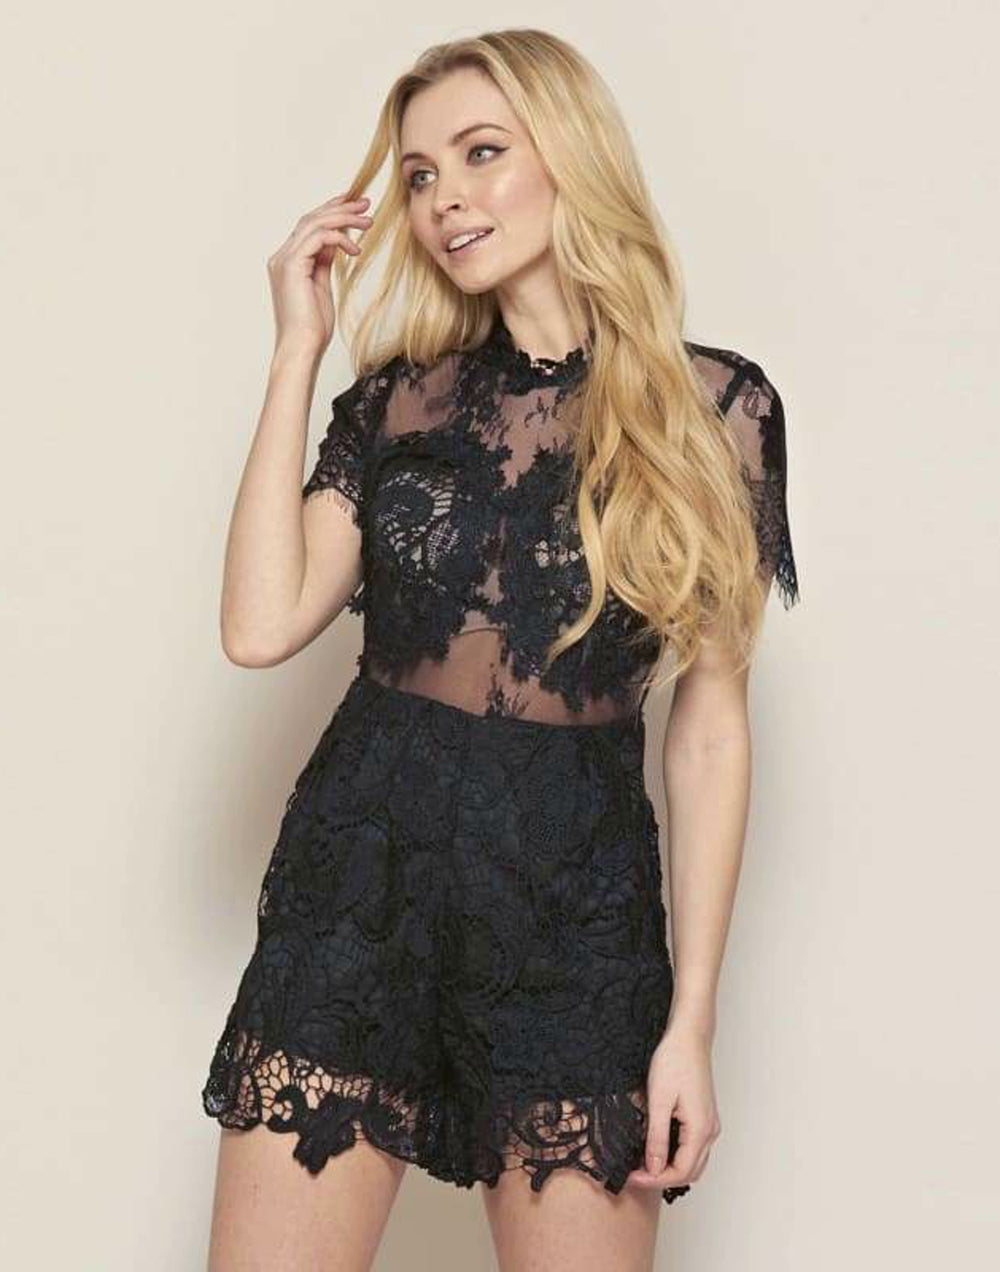 Lace Embroidered Playsuit - M Size